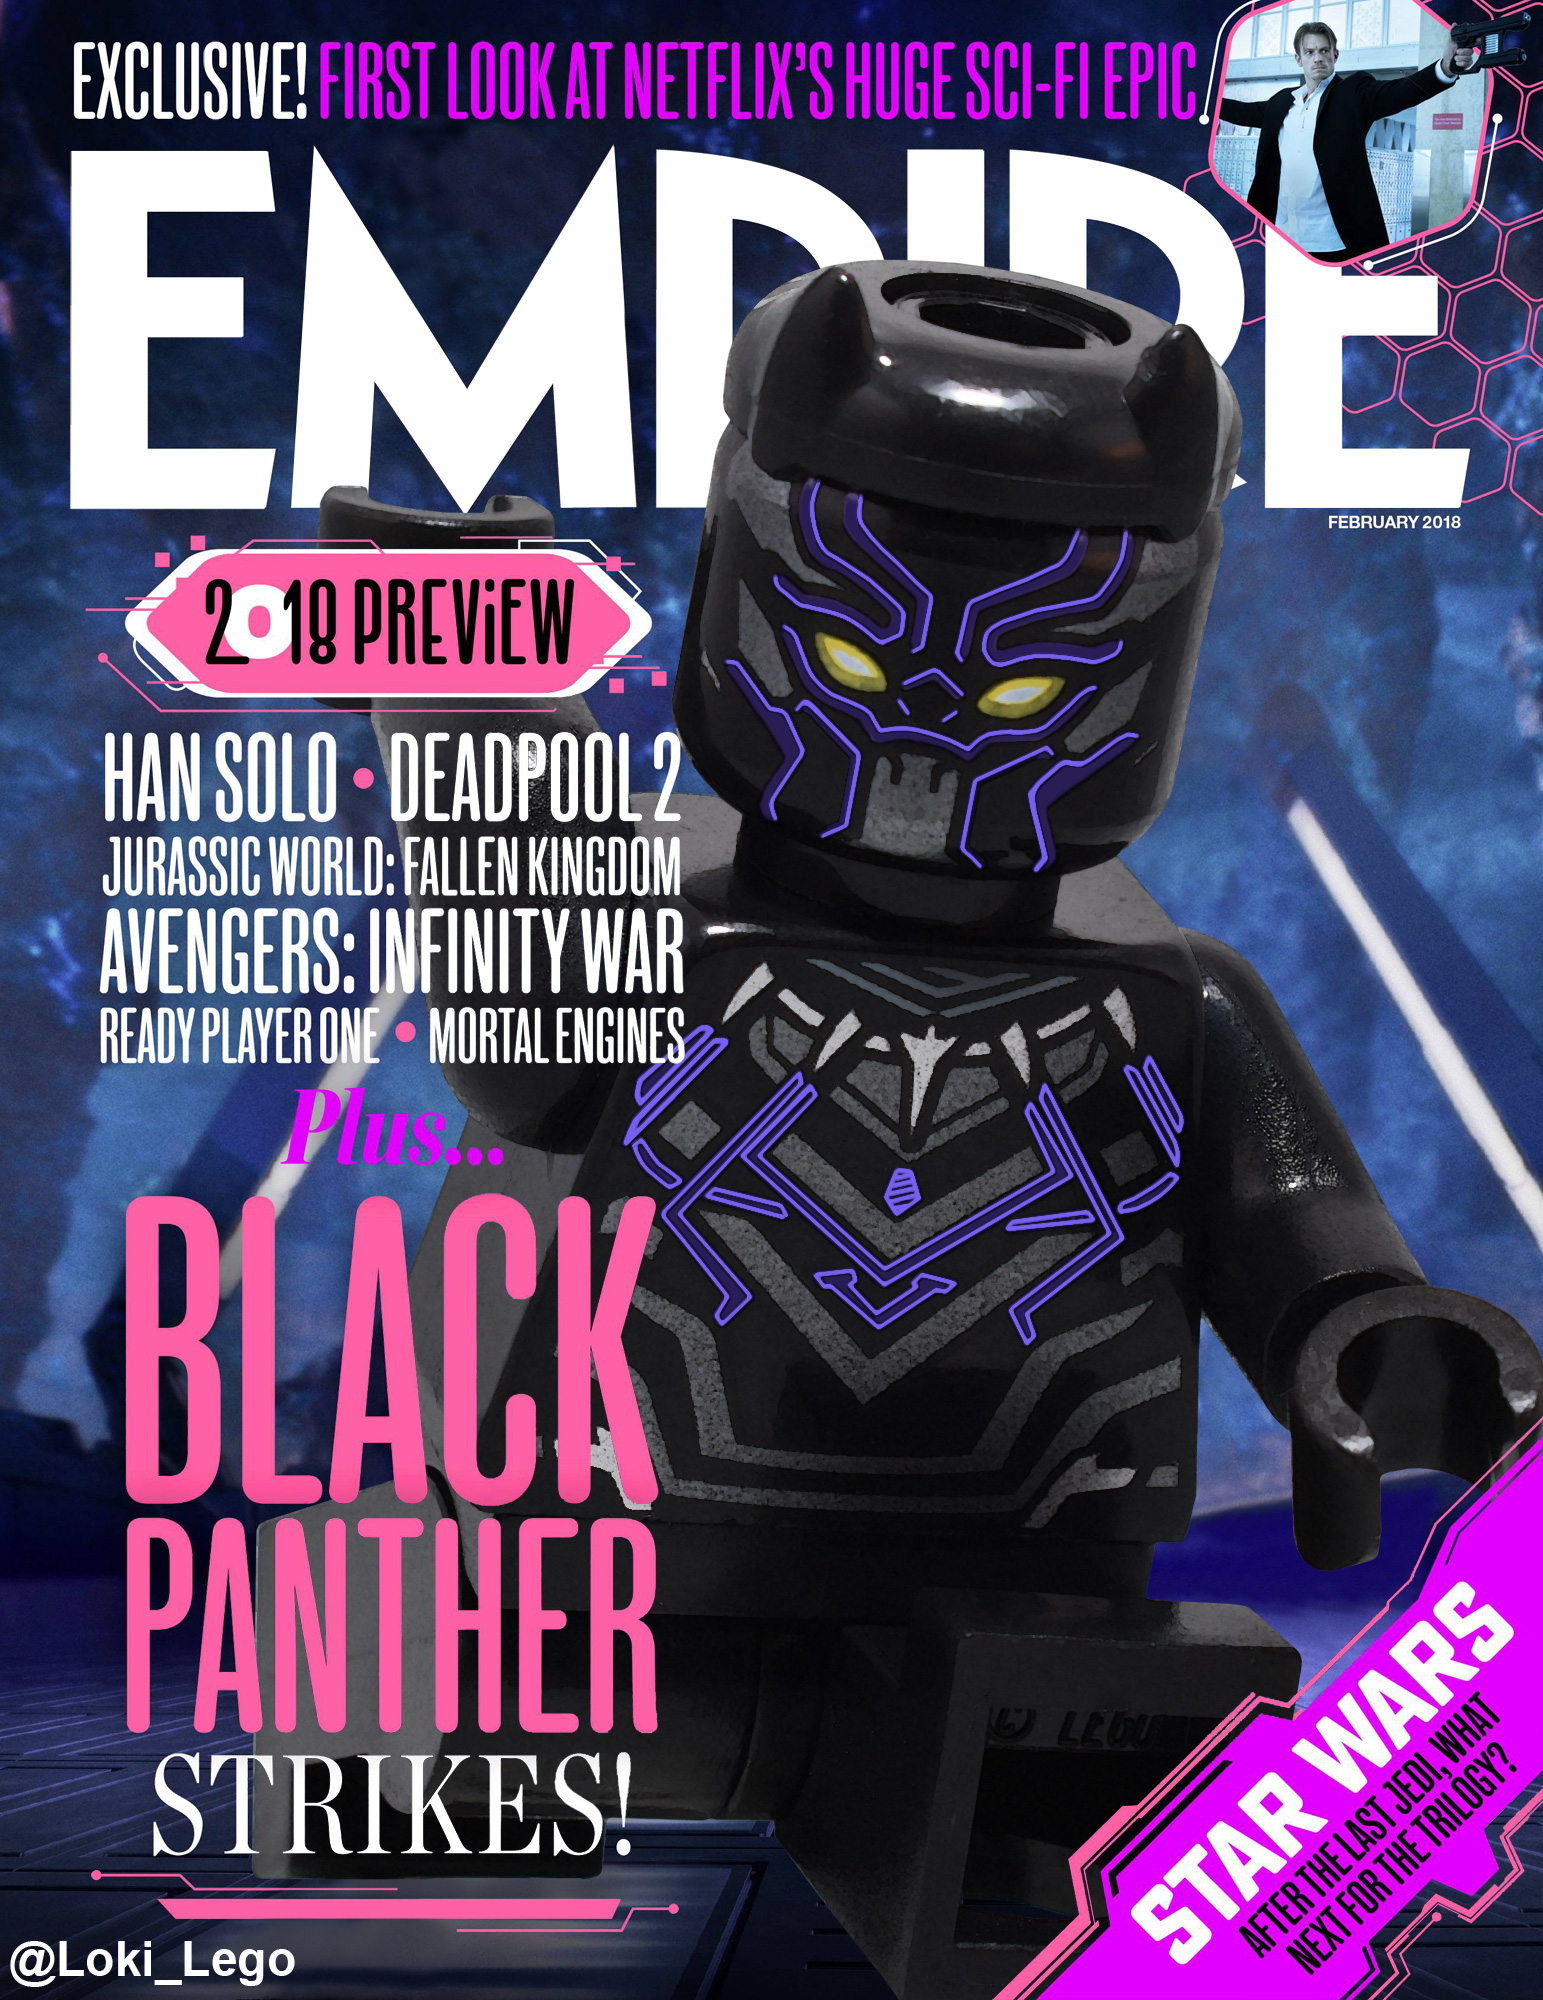 Black Panther Empire Magazine Cover Recreated in LEGO